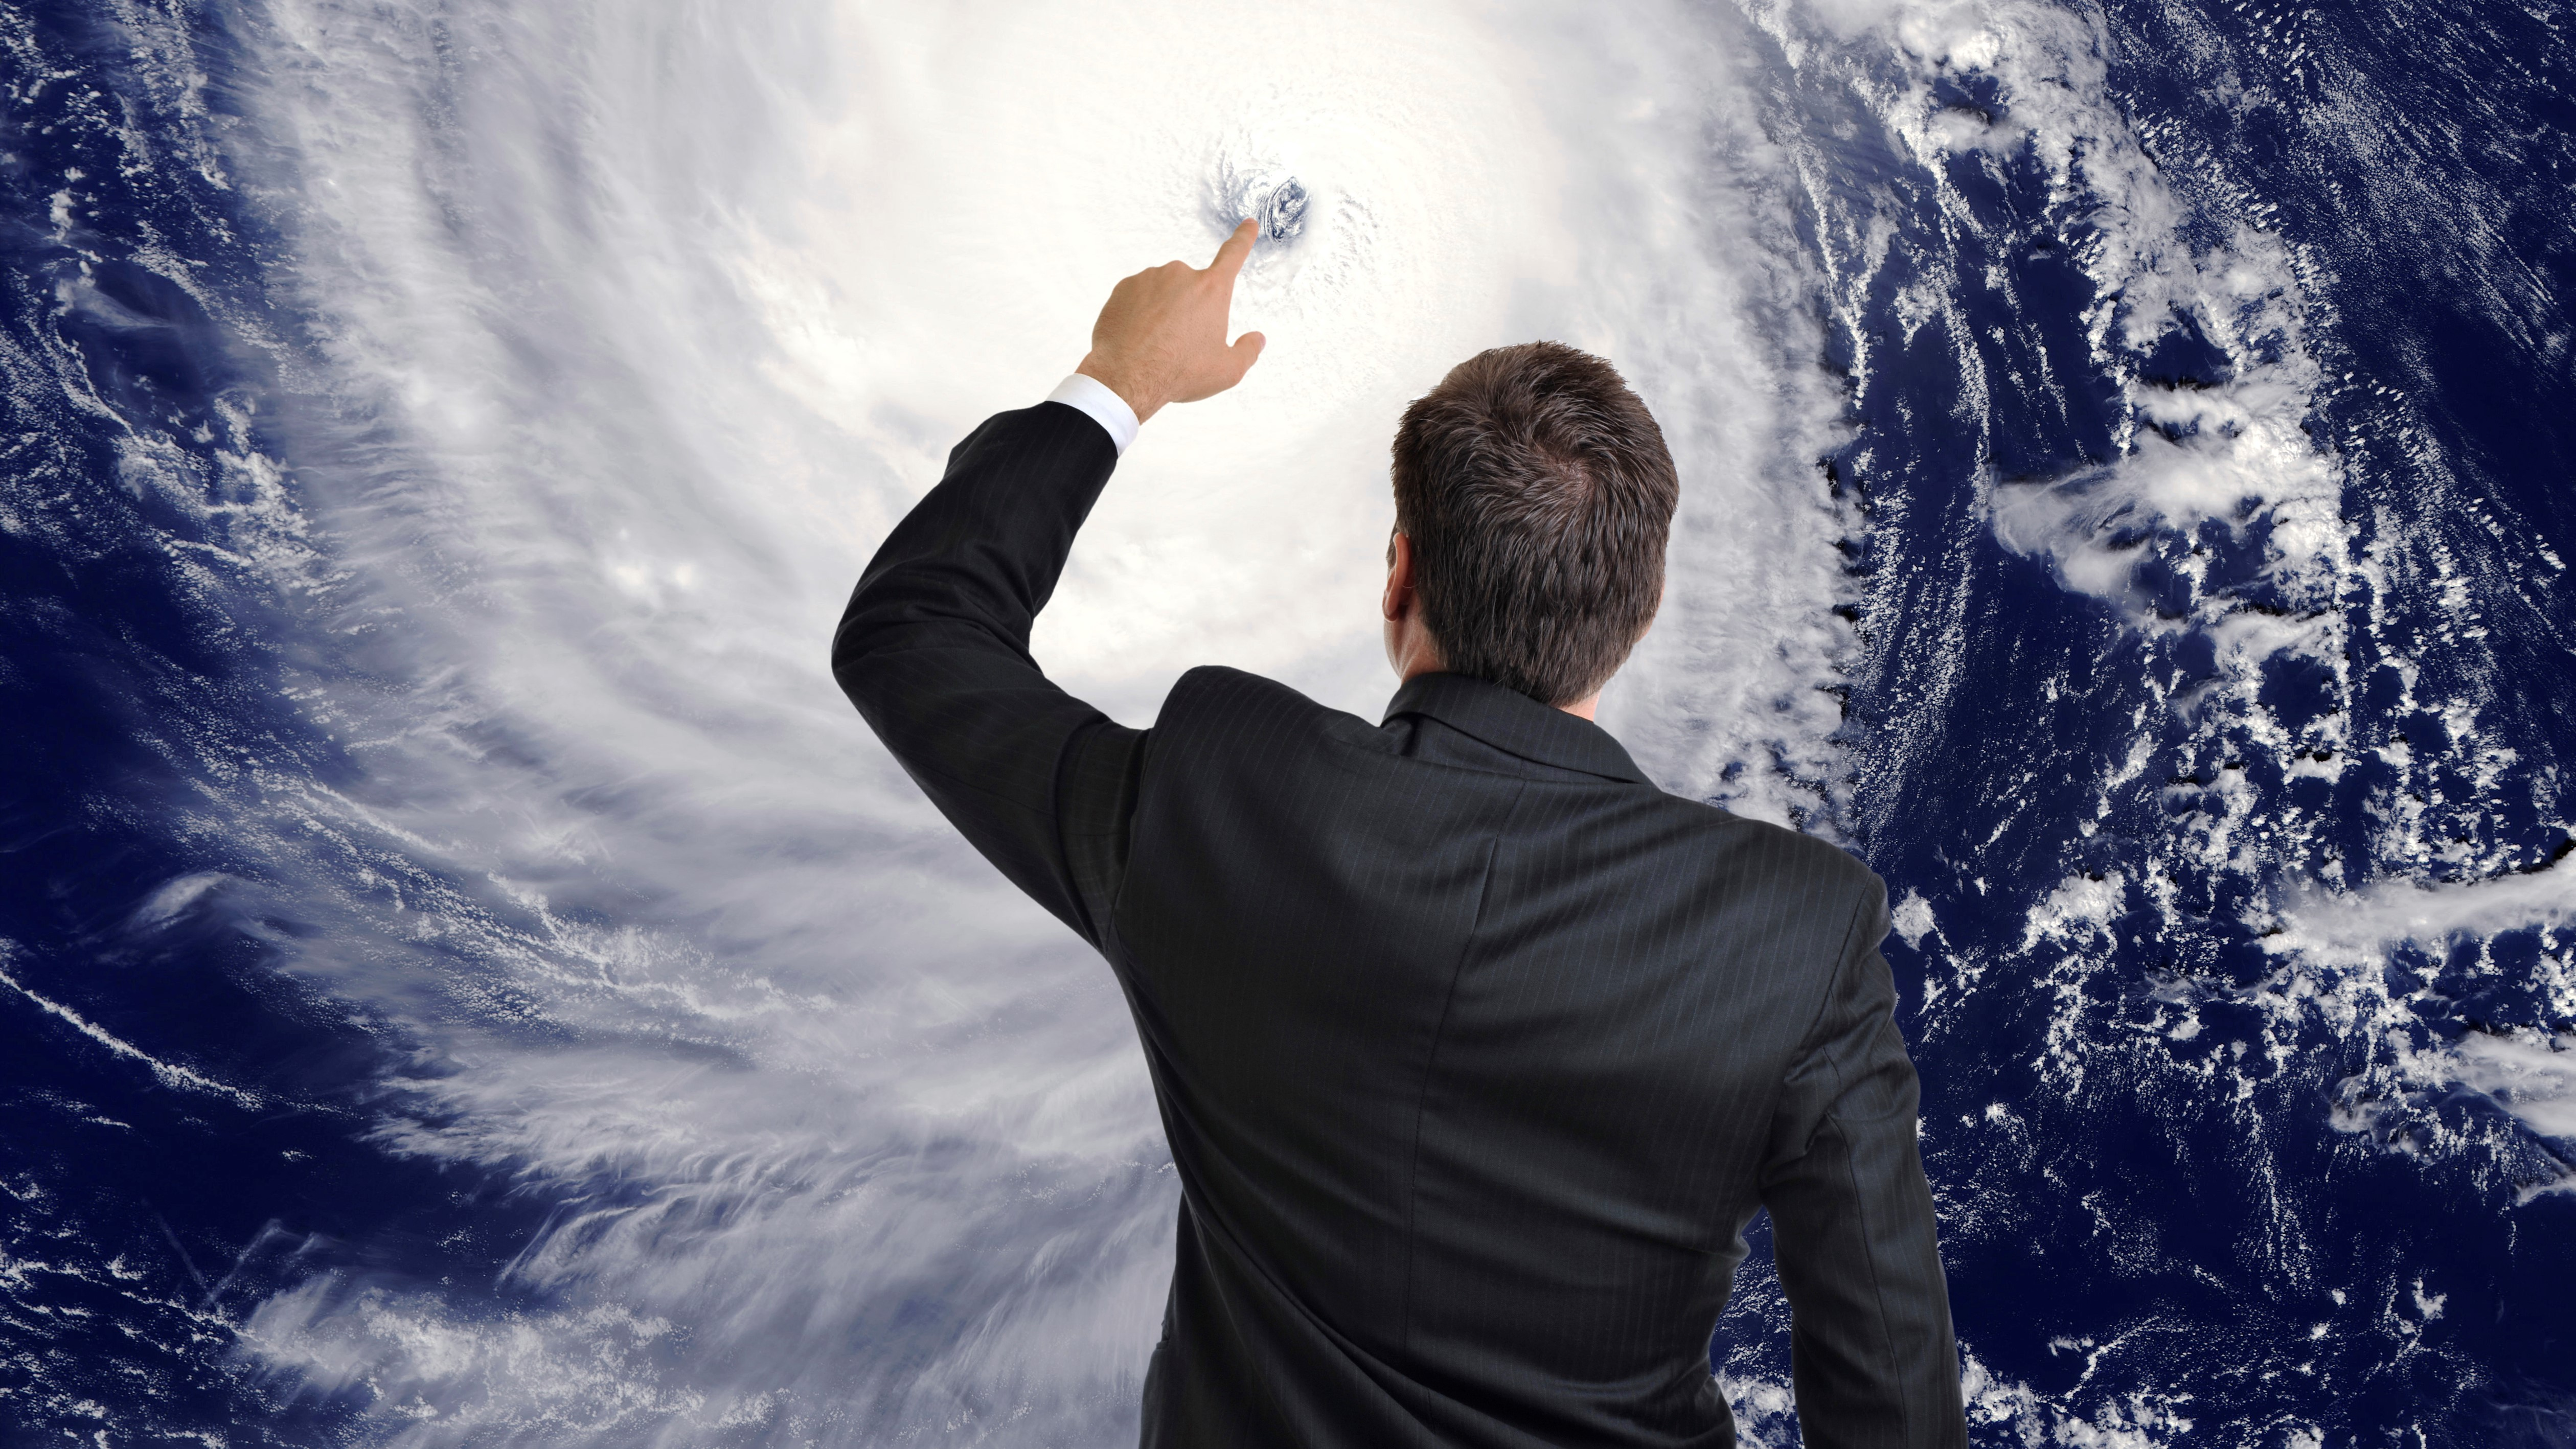 hurricane meteorologist media weather forecast cropped